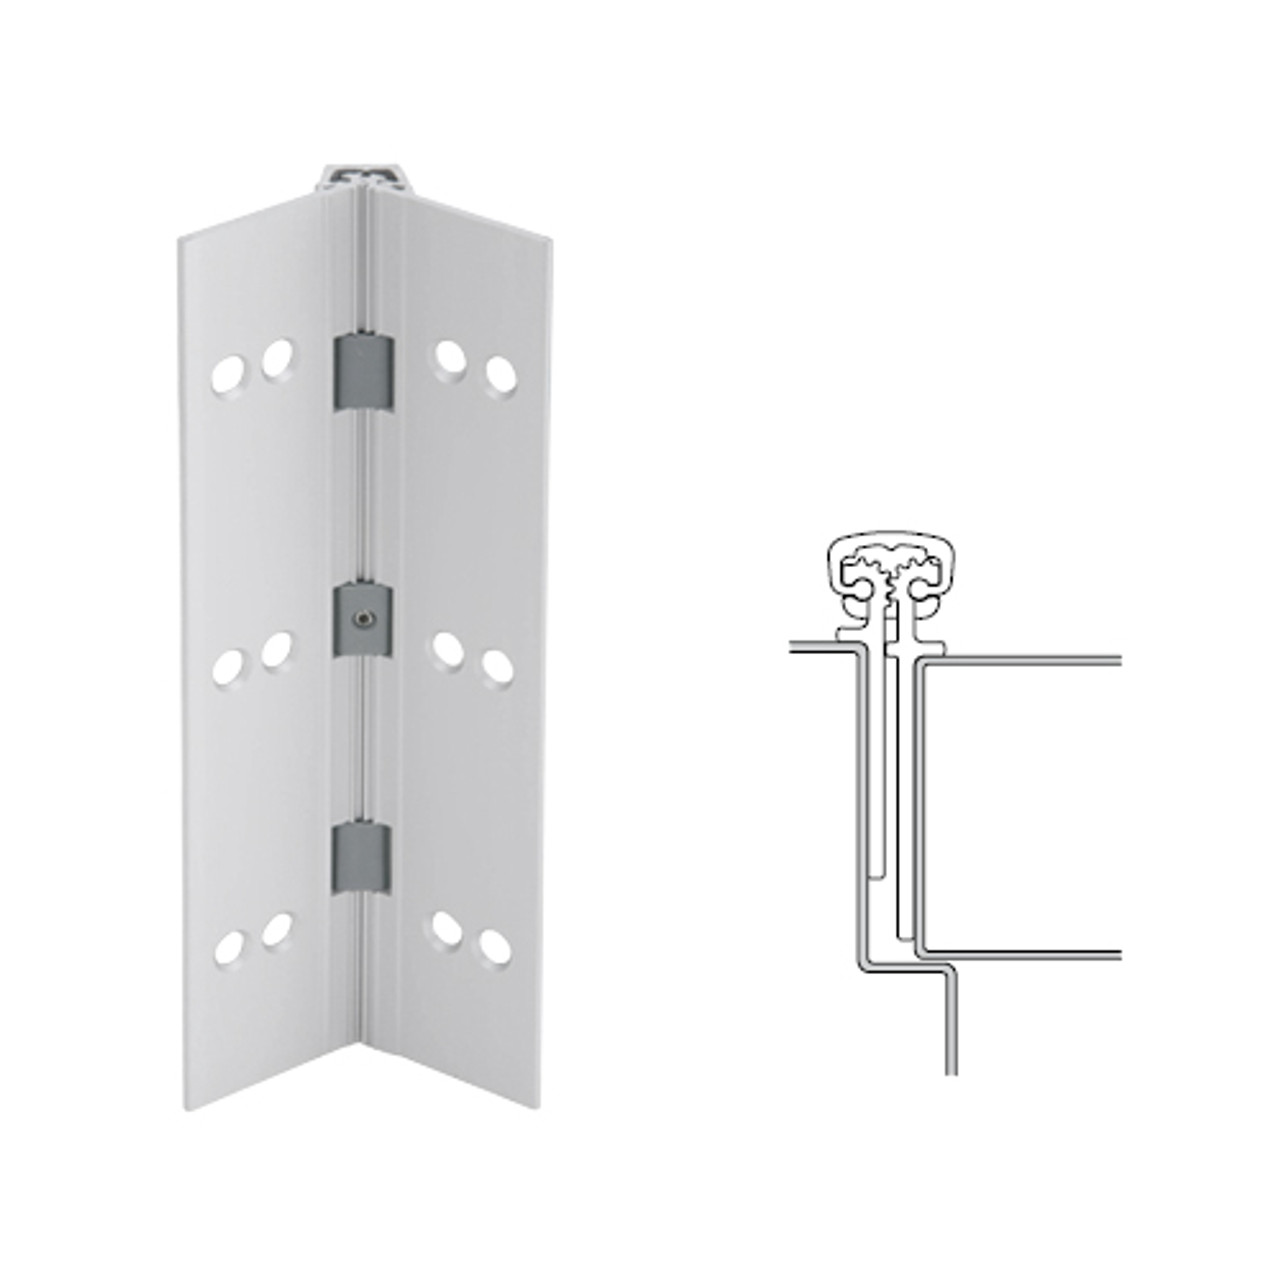 026XY-US28-83-WD IVES Full Mortise Continuous Geared Hinges with Wood Screws in Satin Aluminum